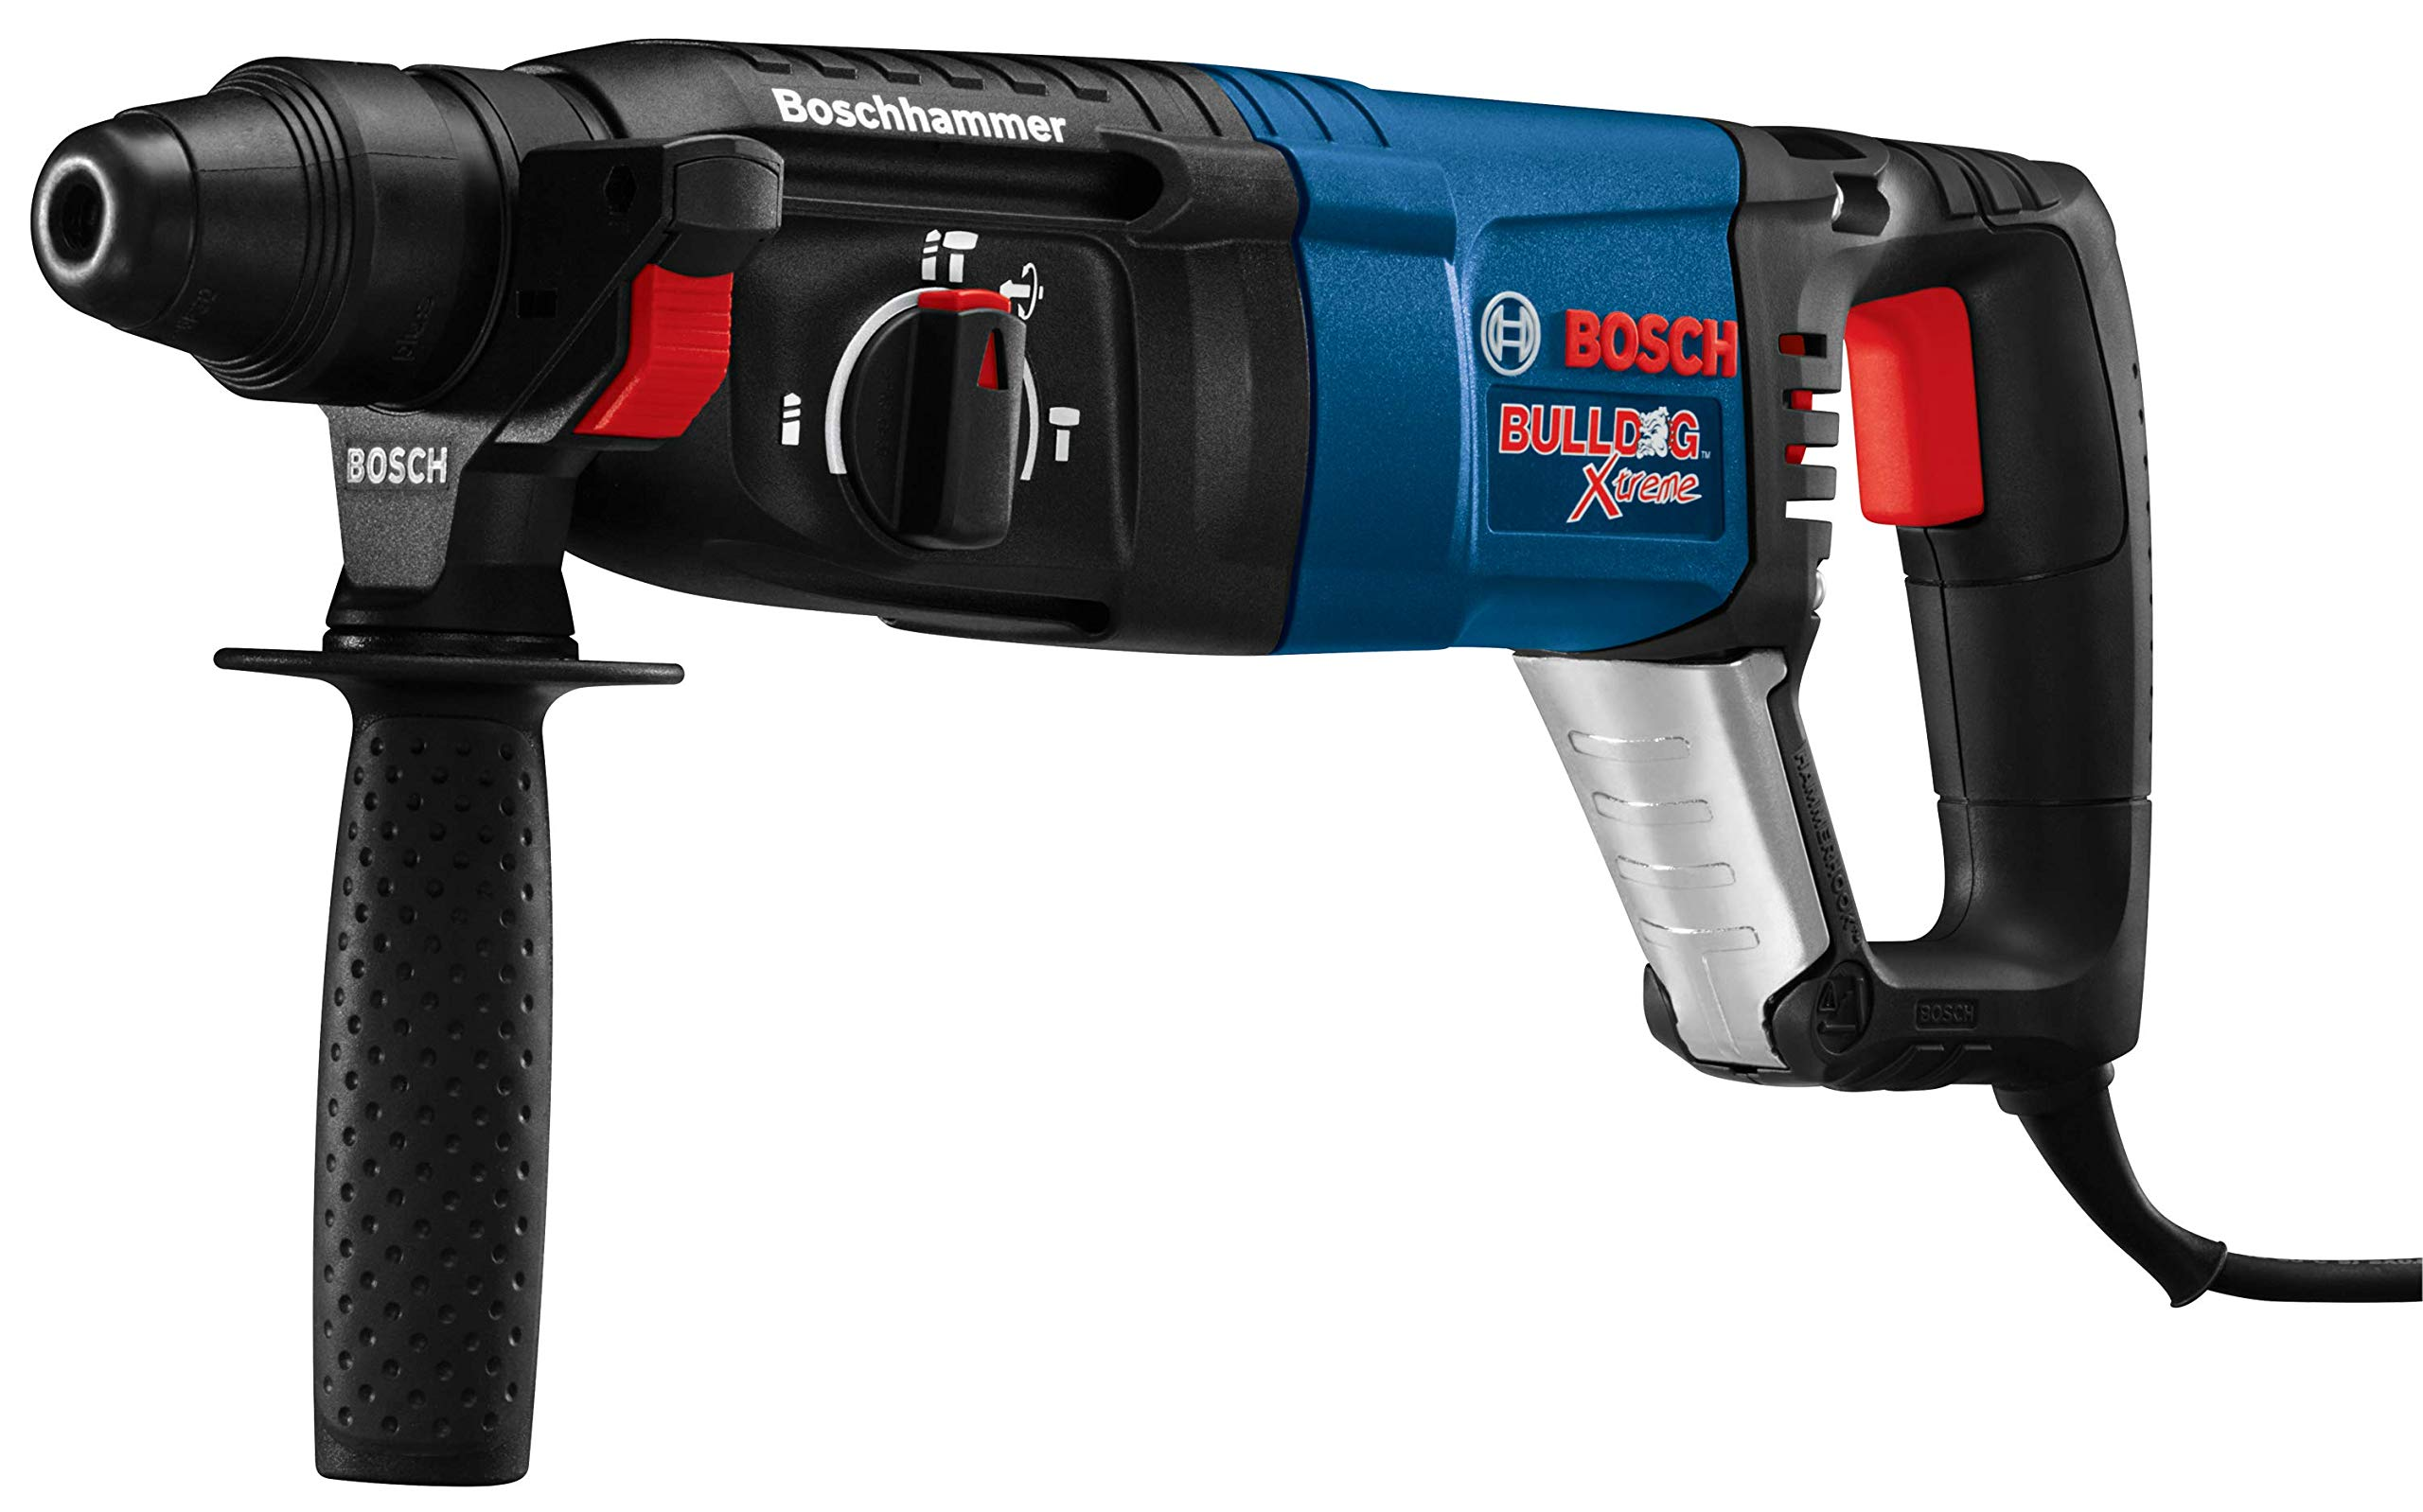 Bosch 11255VSR Bulldog Xtreme - 8 Amp 1 in. Corded Variable Speed Sds-Plus Concrete/Masonry Rotary Hammer Power Drill with Carrying Case by Bosch